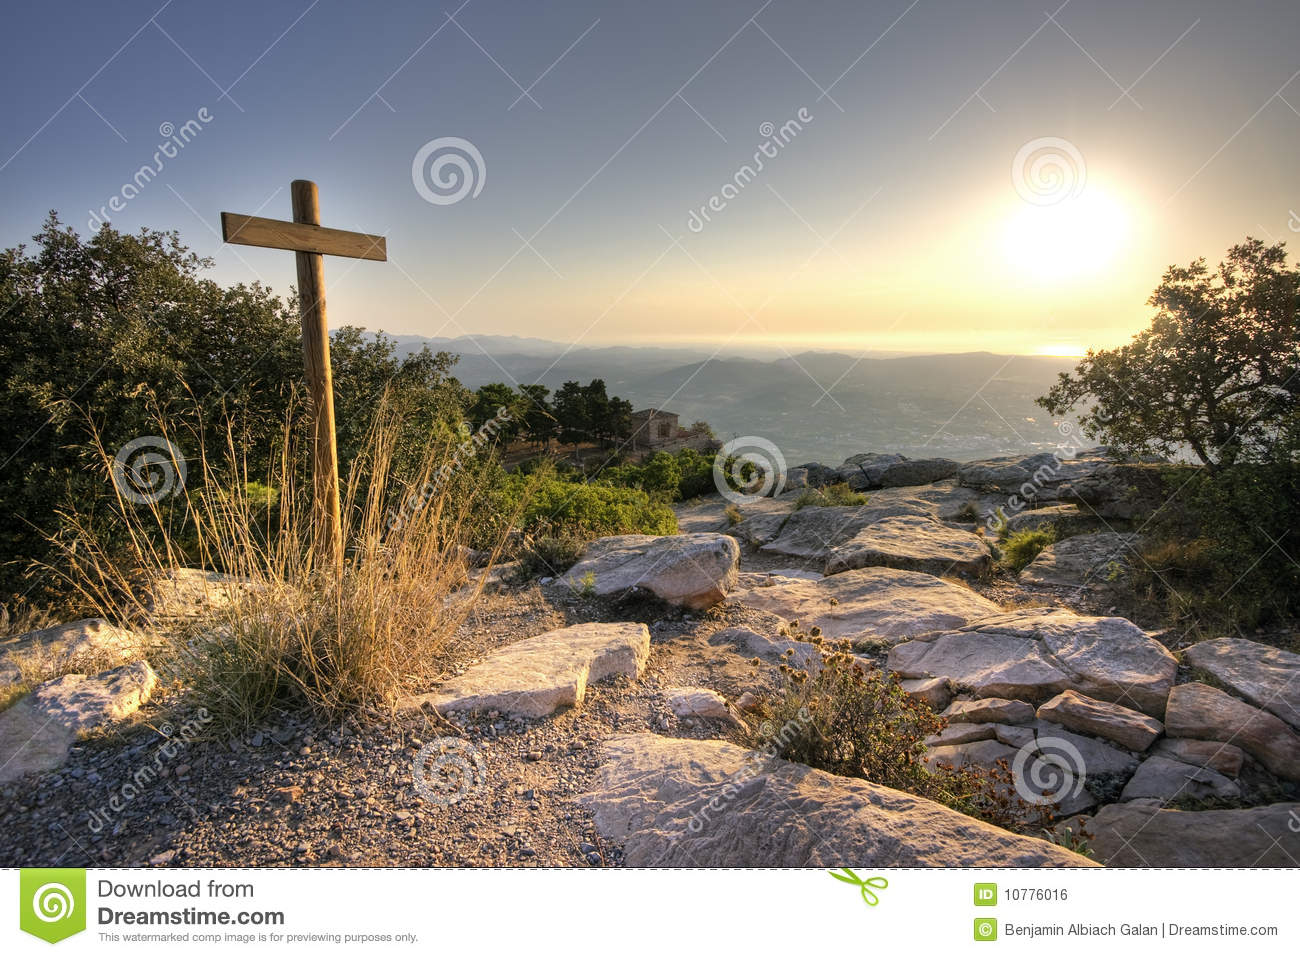 Cross at the top of the mountain